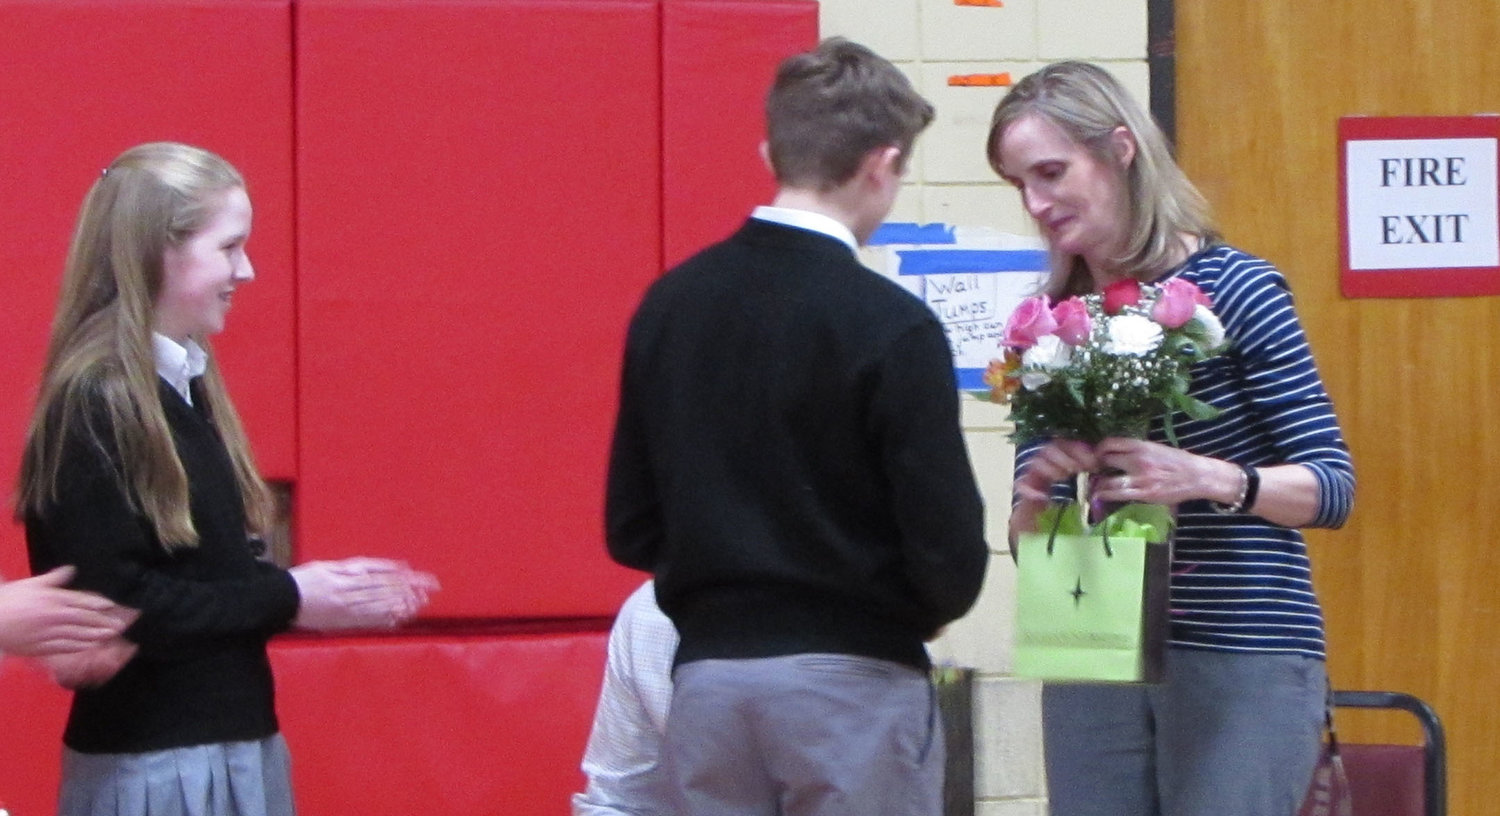 Eighth graders Anna Vredenburg and Ryan Stone present Principal Senenko with gifts and flowers from the school.